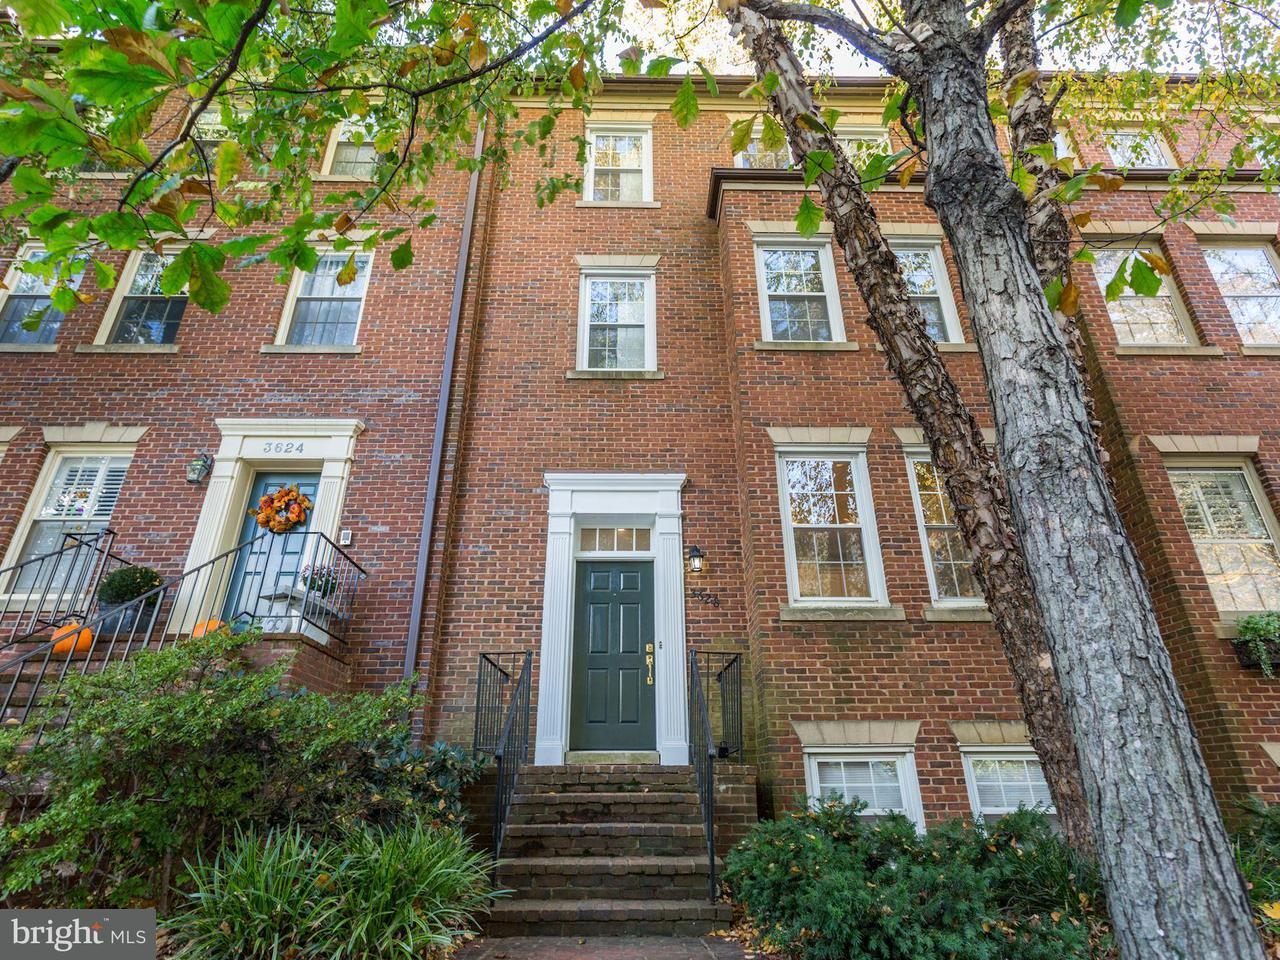 Townhouse for Sale at 3628 RESERVOIR RD NW 3628 RESERVOIR RD NW Washington, District Of Columbia 20007 United States